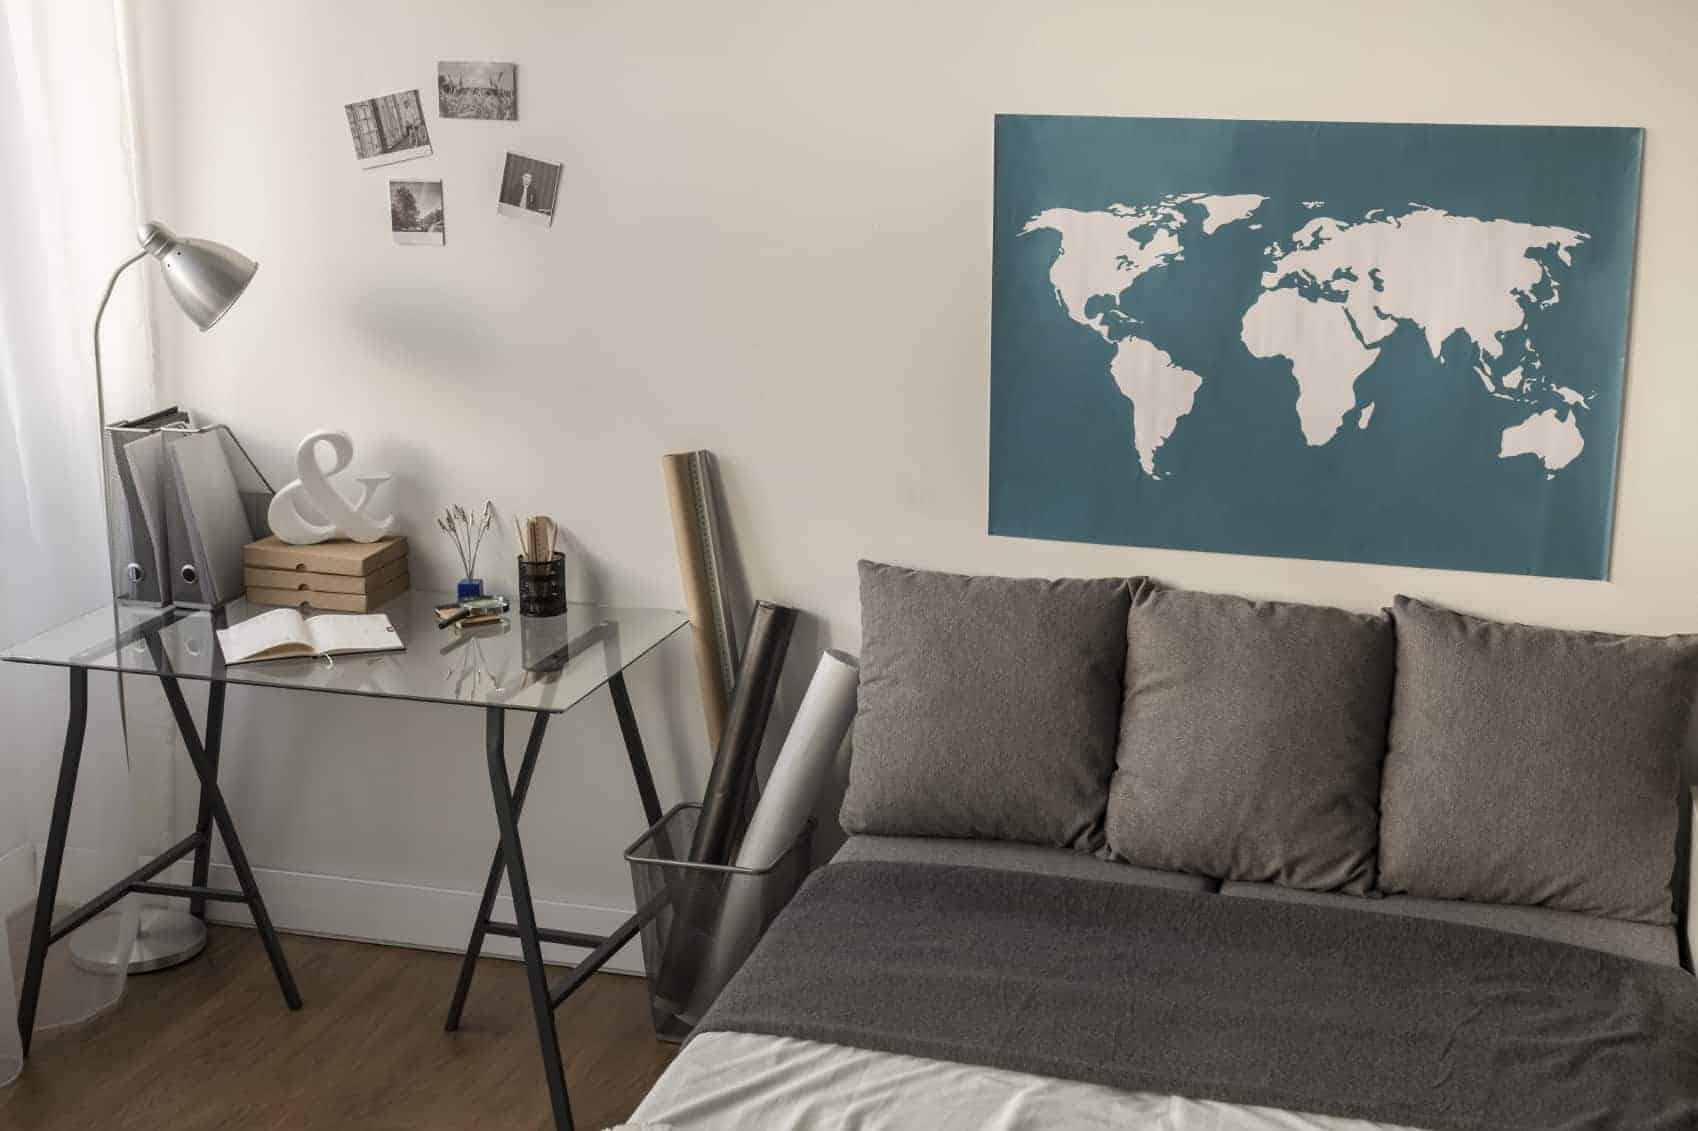 5 Awesome Apartment Decor Ideas for Travelers ApartmentGuidecom